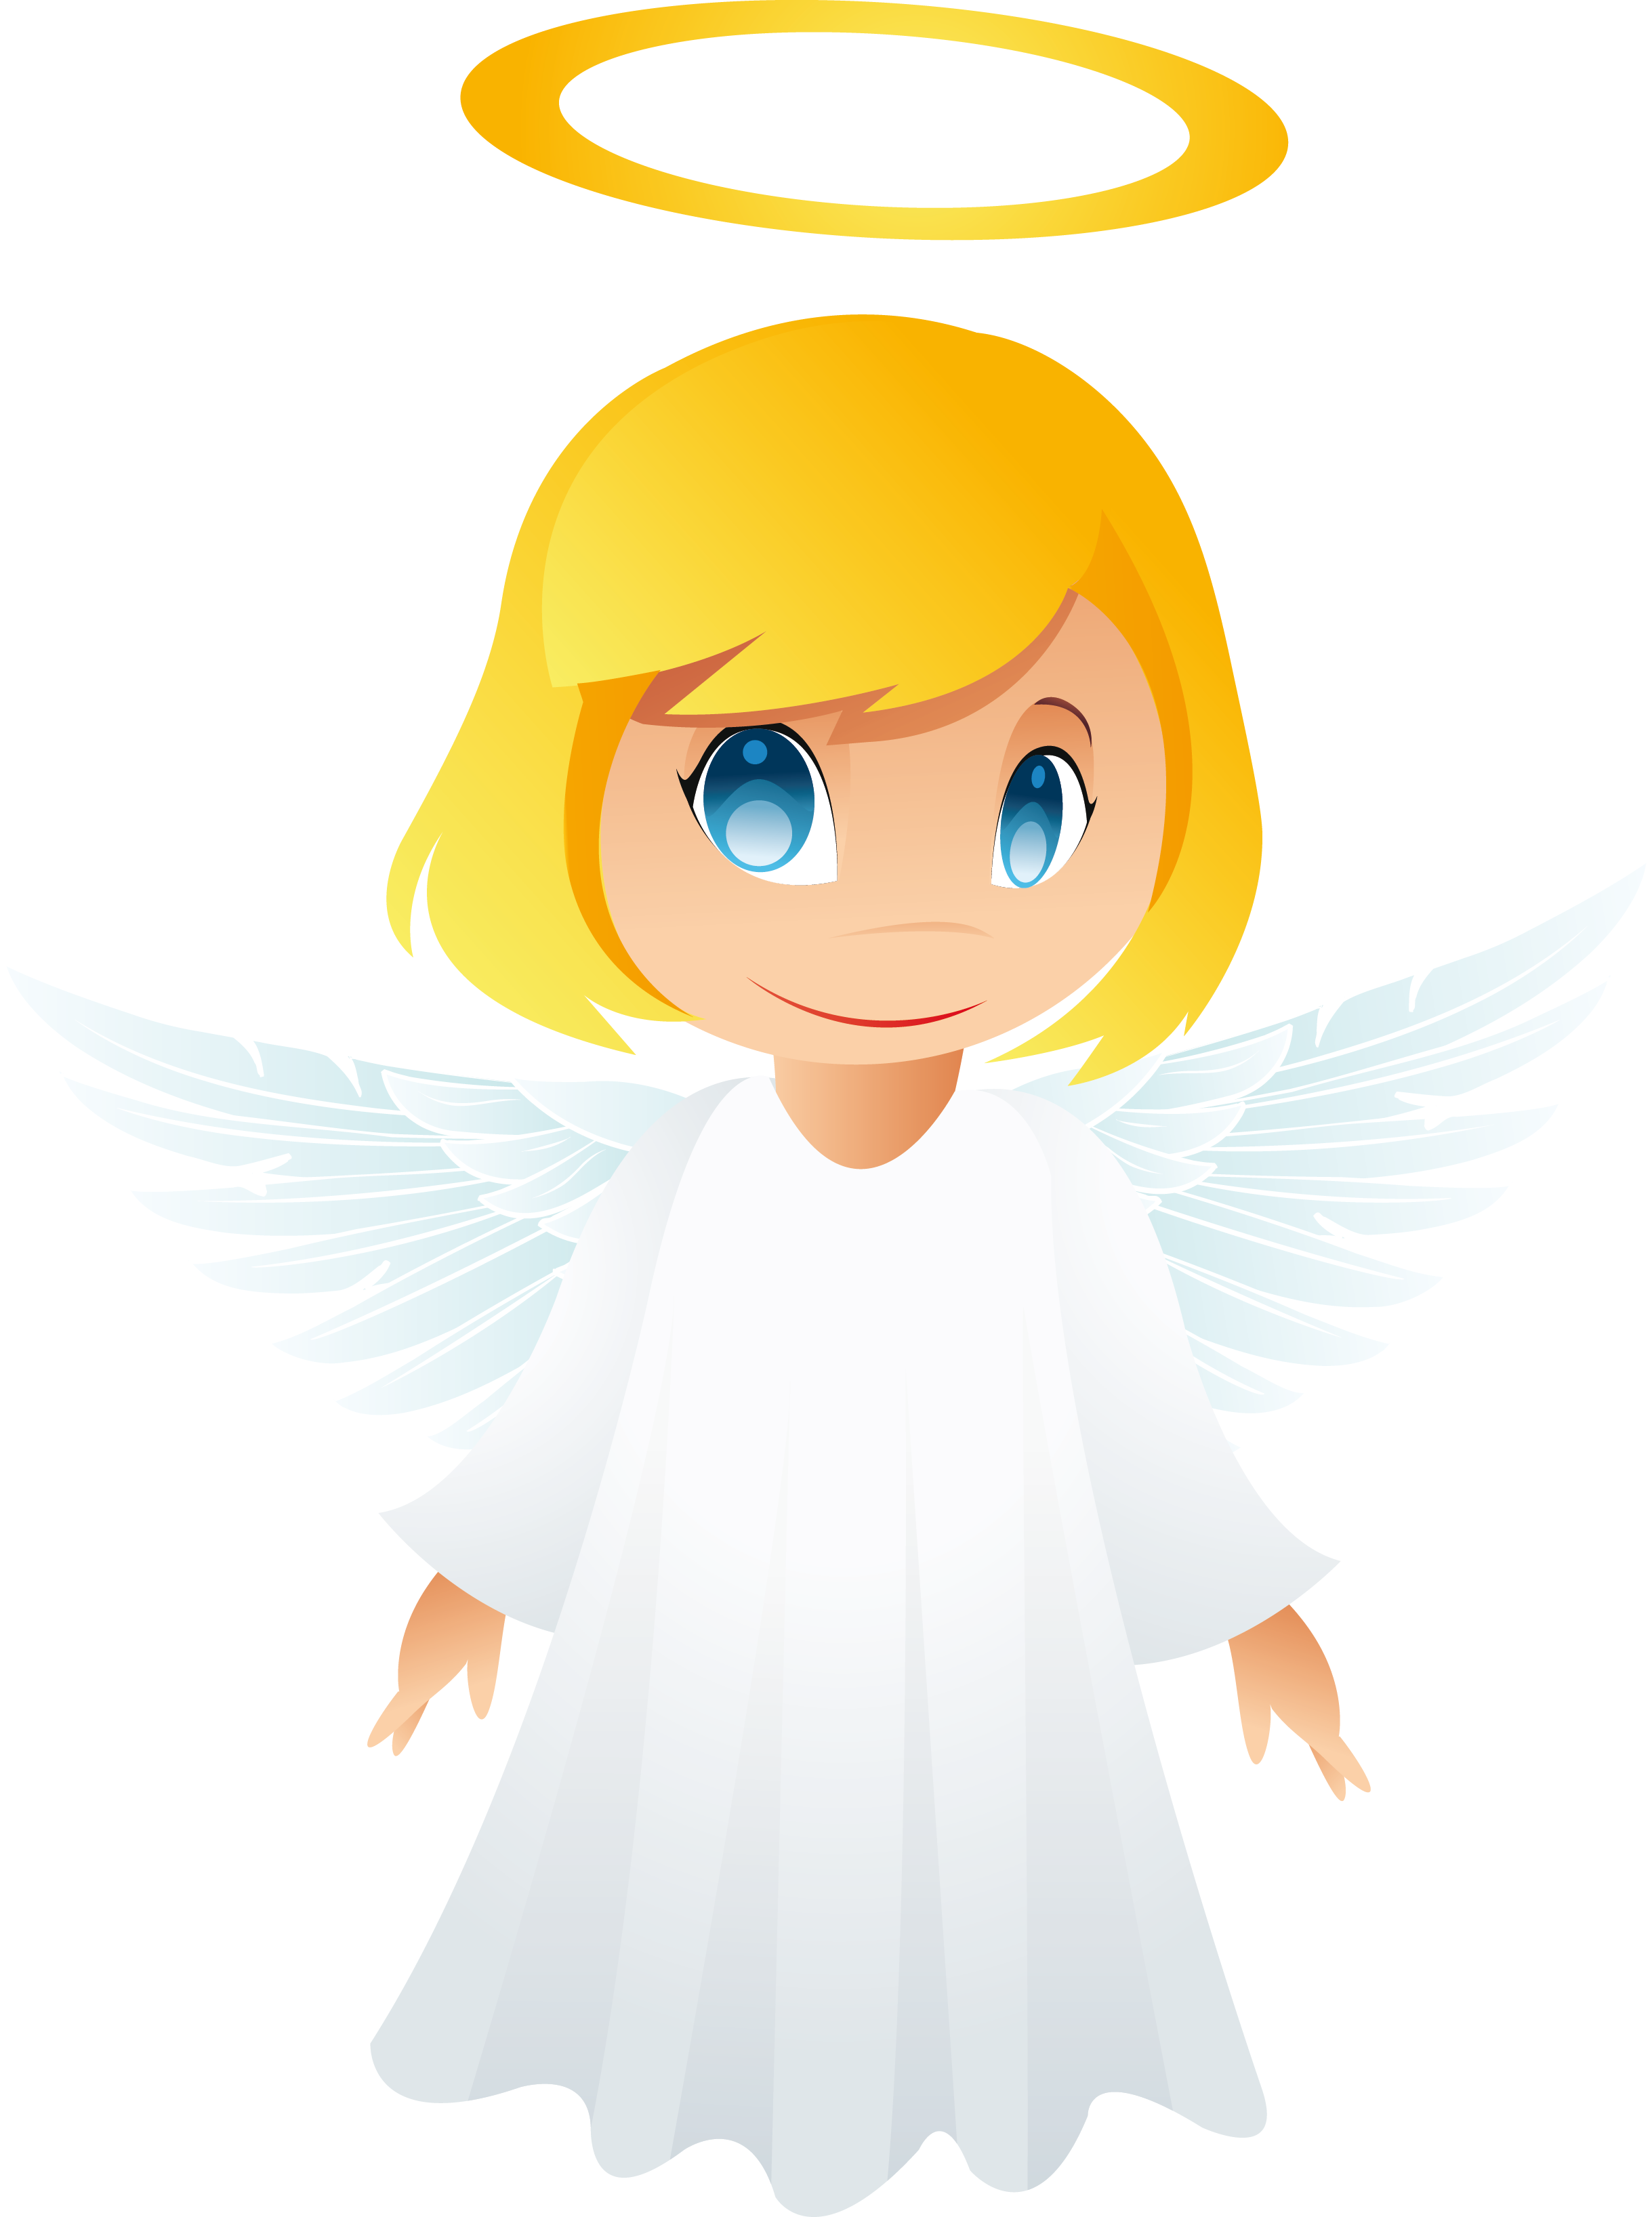 angel clipart free graphics of cherubs and angels the cliparts rh pinterest com free clipart of angels 400x100 pixels free clipart of angels caring for kids